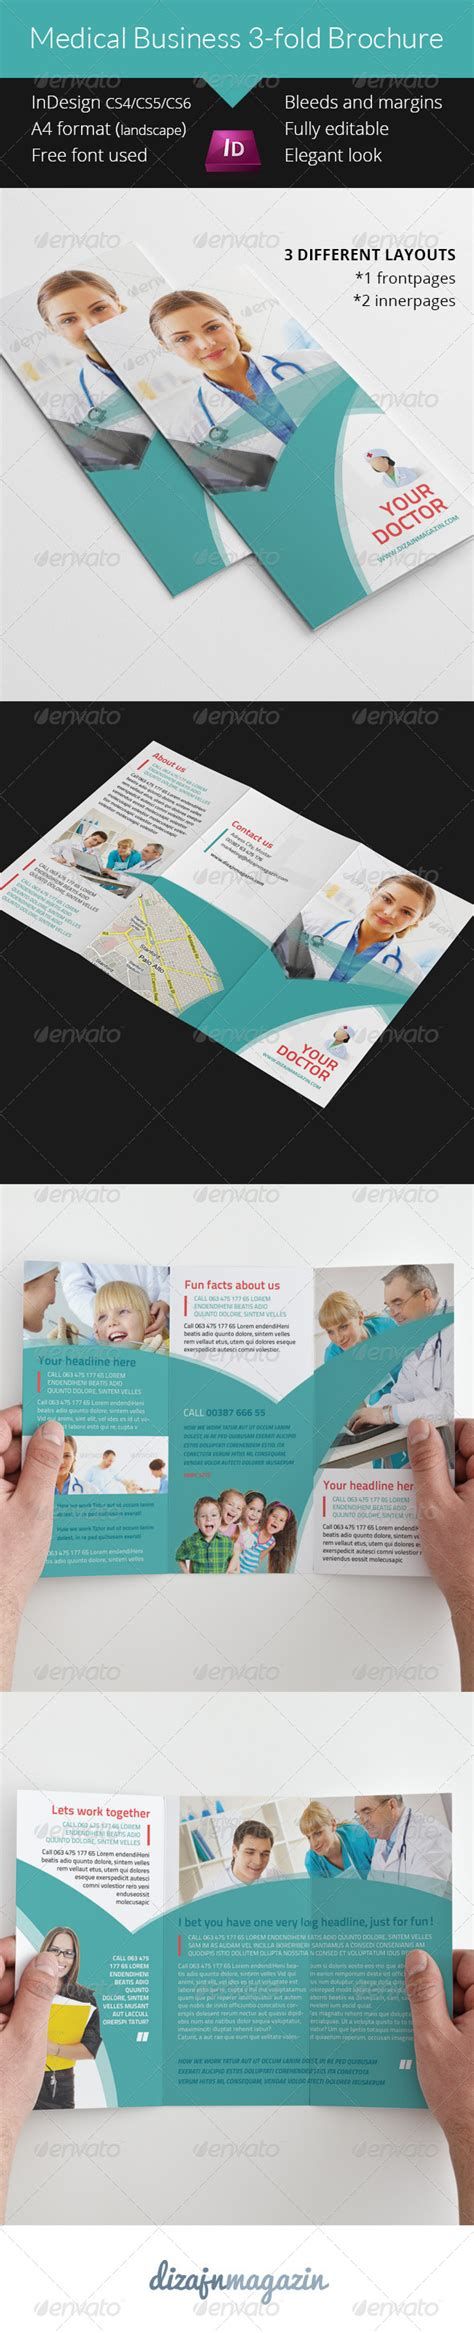 business 3 fold brochure indesign template